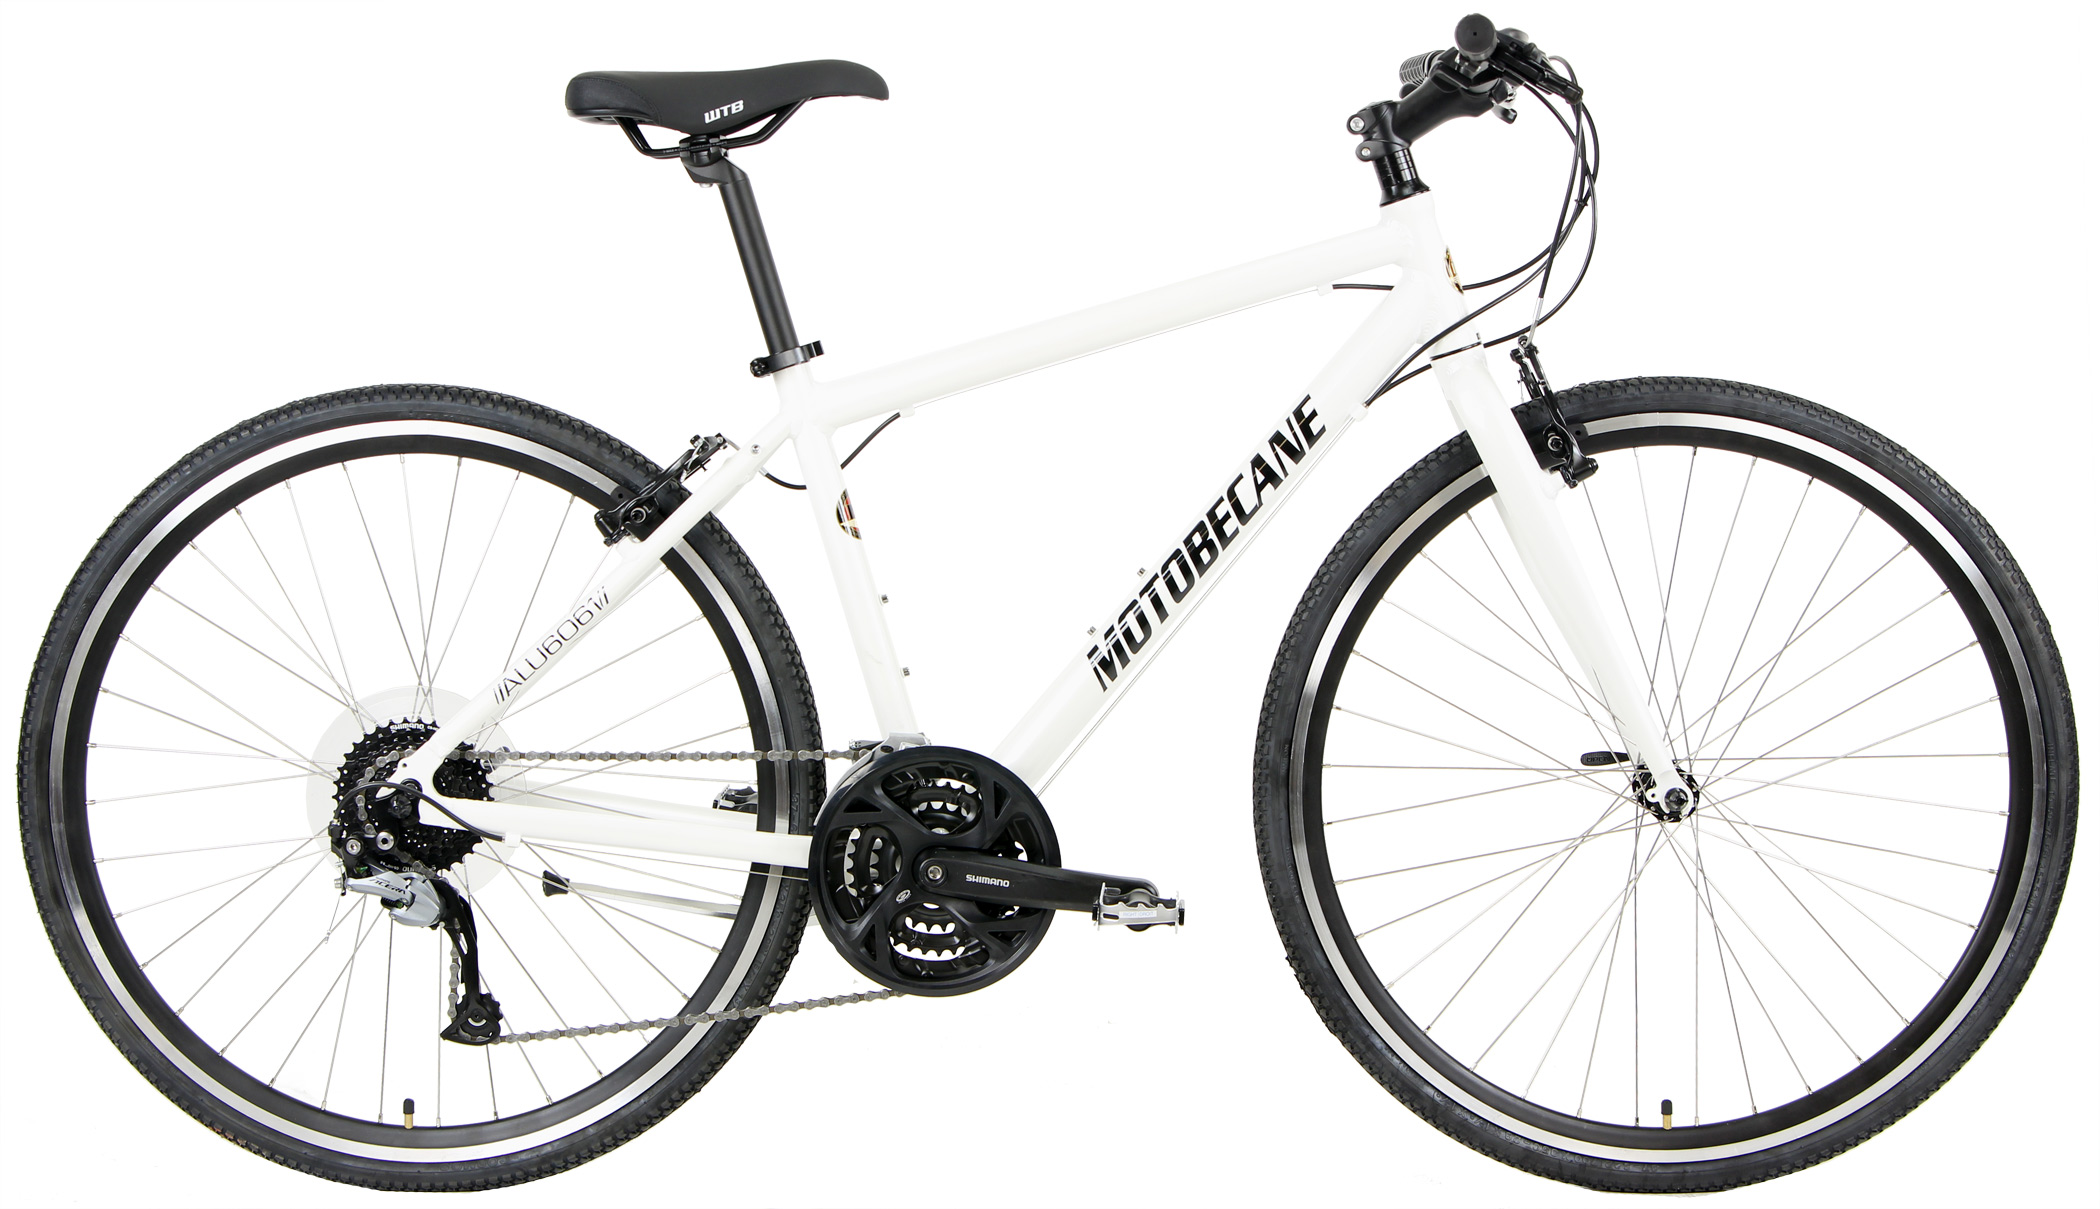 Bikes 2019 Motobecane Cafe Sprint Hybrid Full Shimano Equipped Image